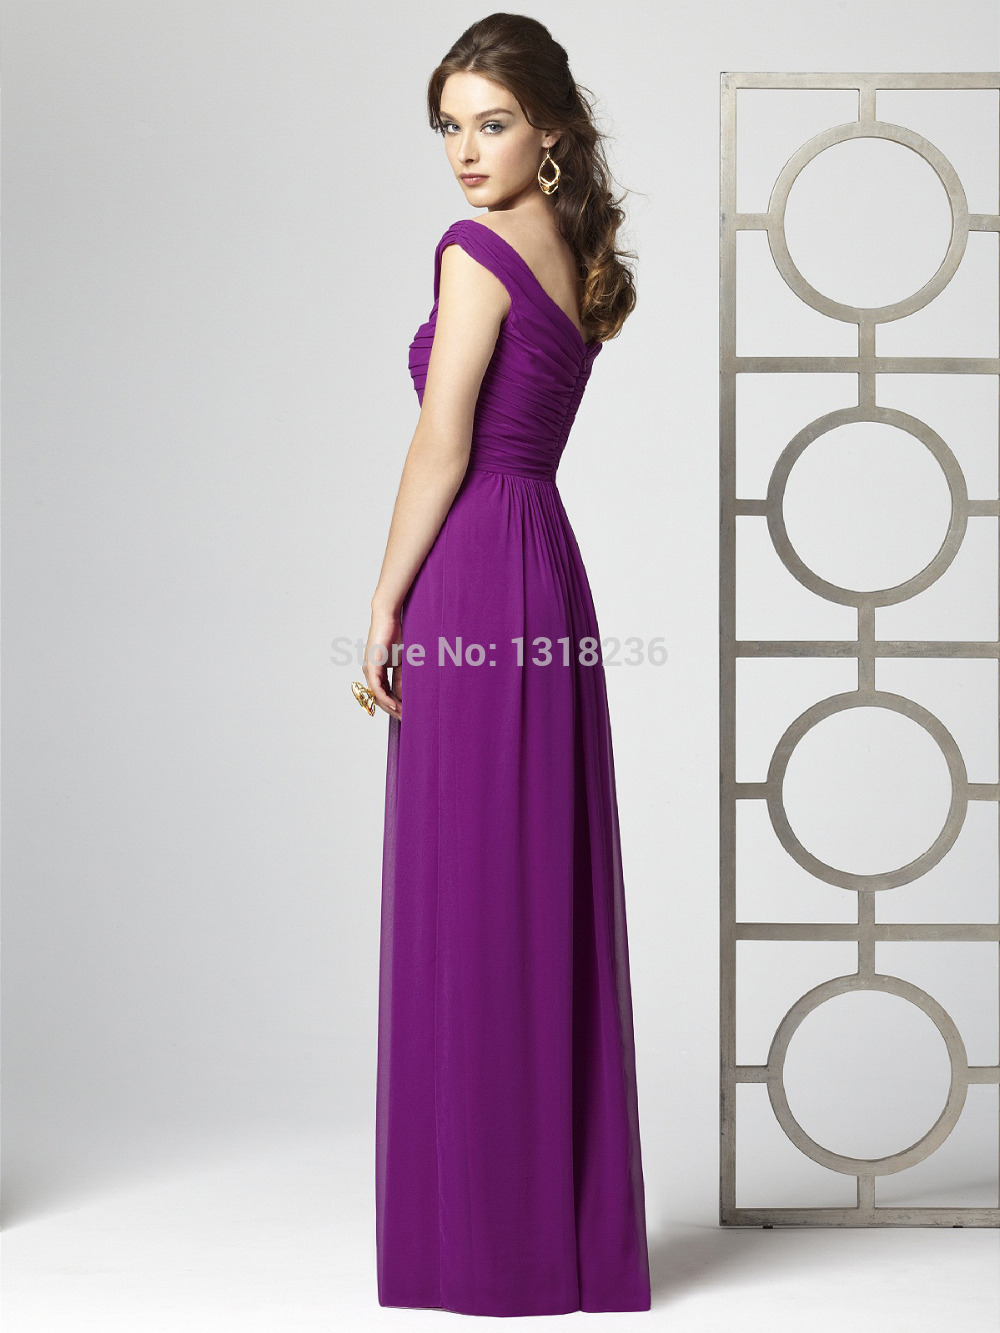 Cadbury Purple Bridesmaid Dresses Uk Cheap Dress Yellow Bridesmaids ...